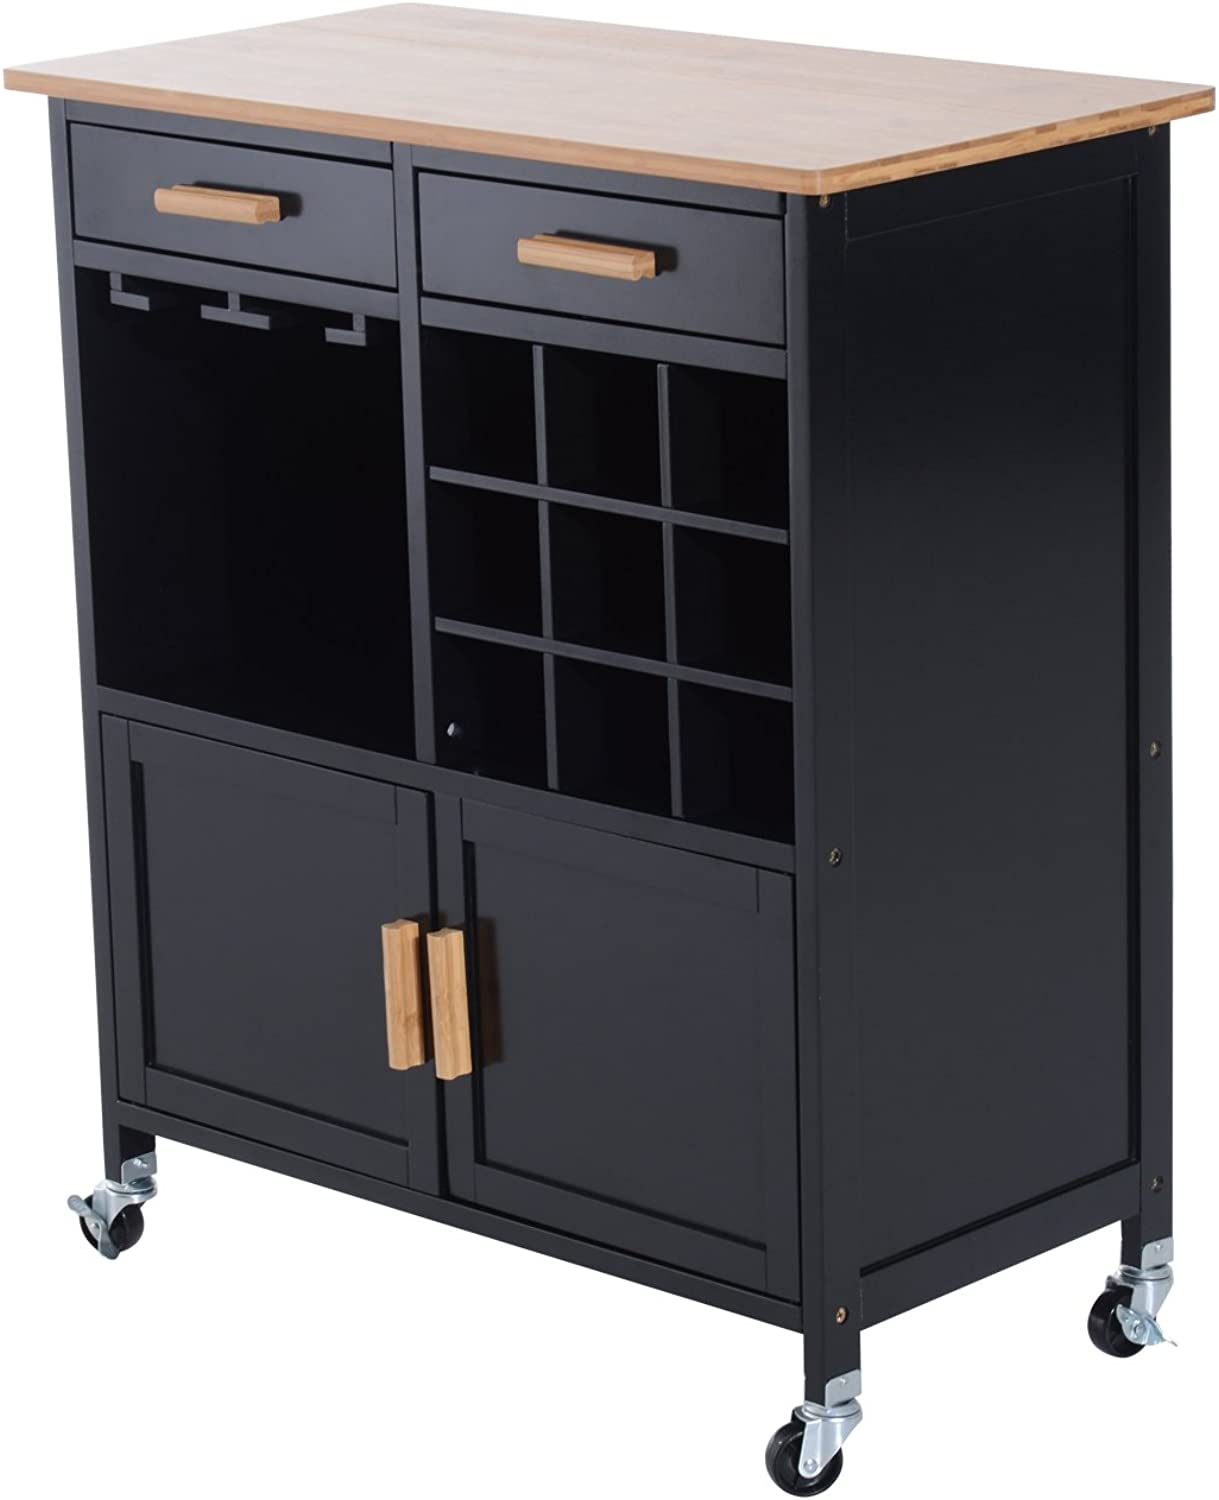 HomCom 801-008BK Portable Kitchen Trolley with Bamboo Top Storage Cabinet and Wine Rack